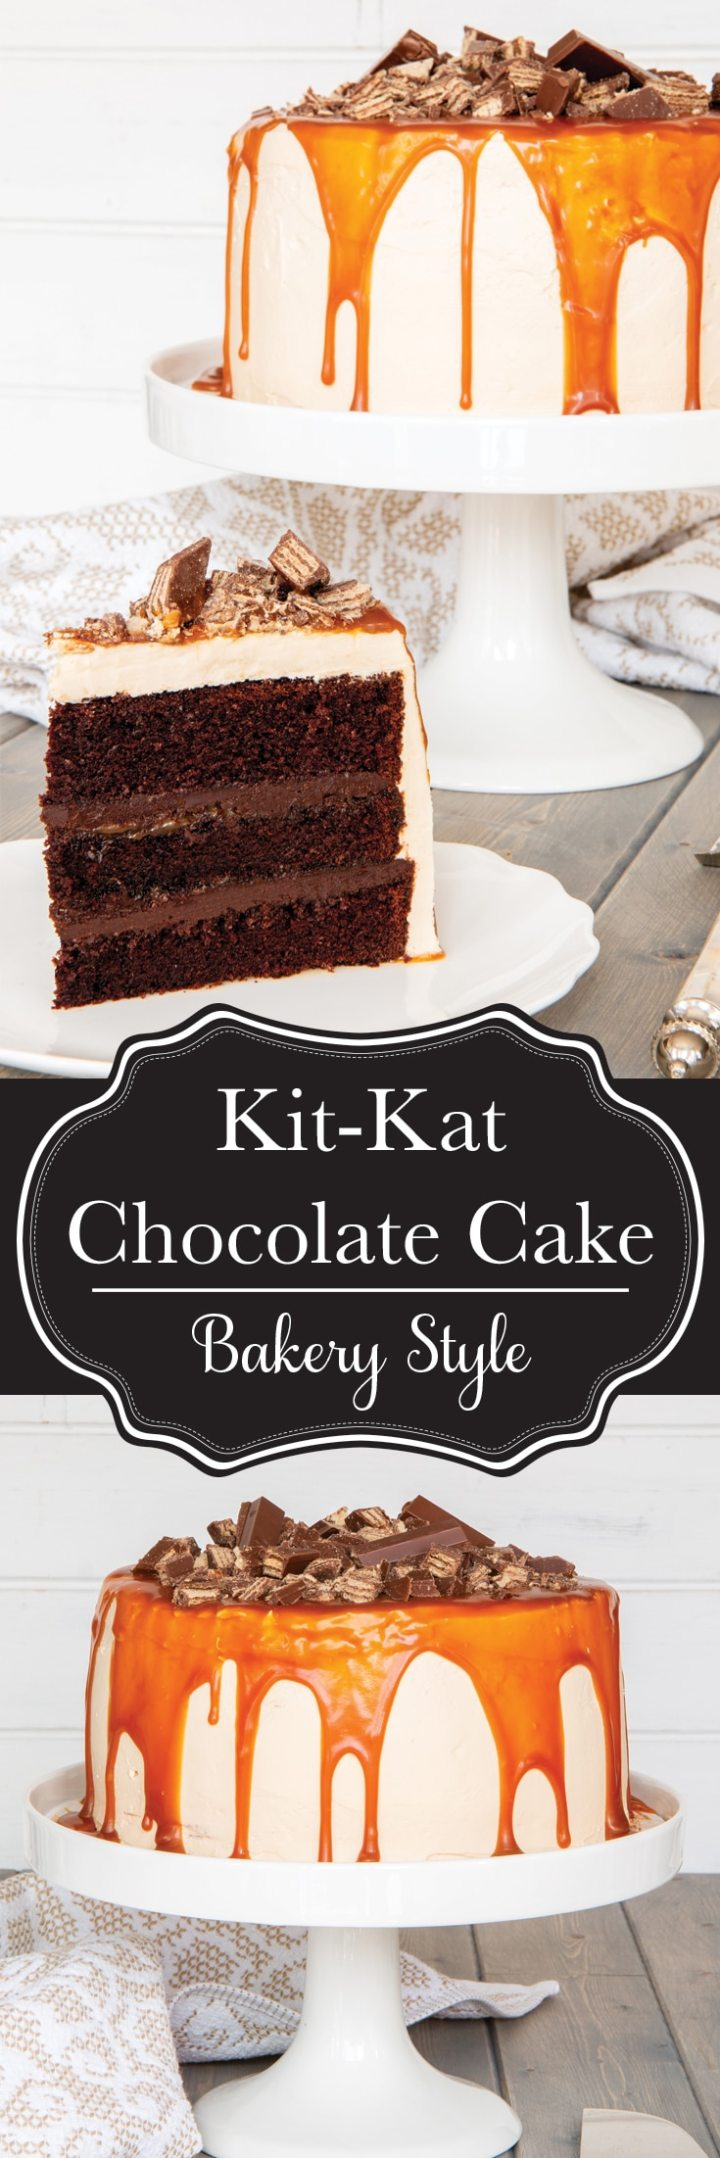 Everyone loves a Kit Kat bar, especially Bo. We saw a little Kit Kat Cake in the grocery store that he wanted, and I told him I could do WAY better than that. Here it is: super moist chocolate cake with a fudge filling and a smooth, delicious caramel buttercream. And lots (AND LOTS) of Kit Kat pieces!